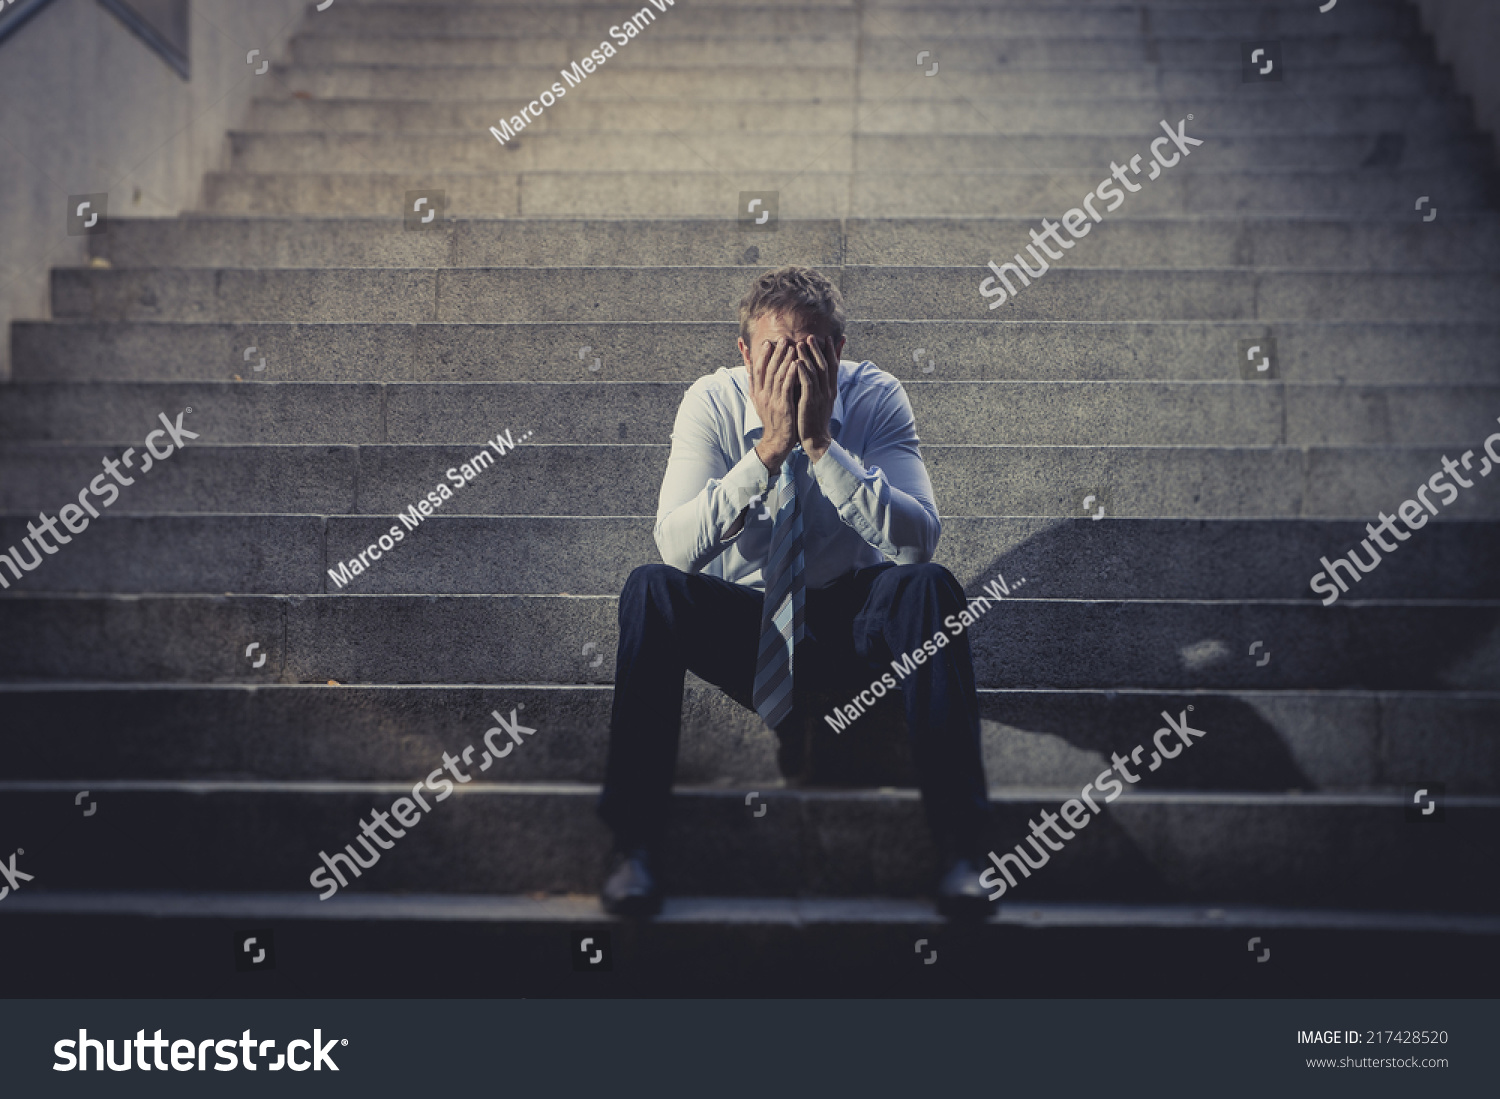 Young business man crying abandoned lost in depression sitting on ground street concrete stairs suffering emotional pain sadness looking sick in grunge lighting